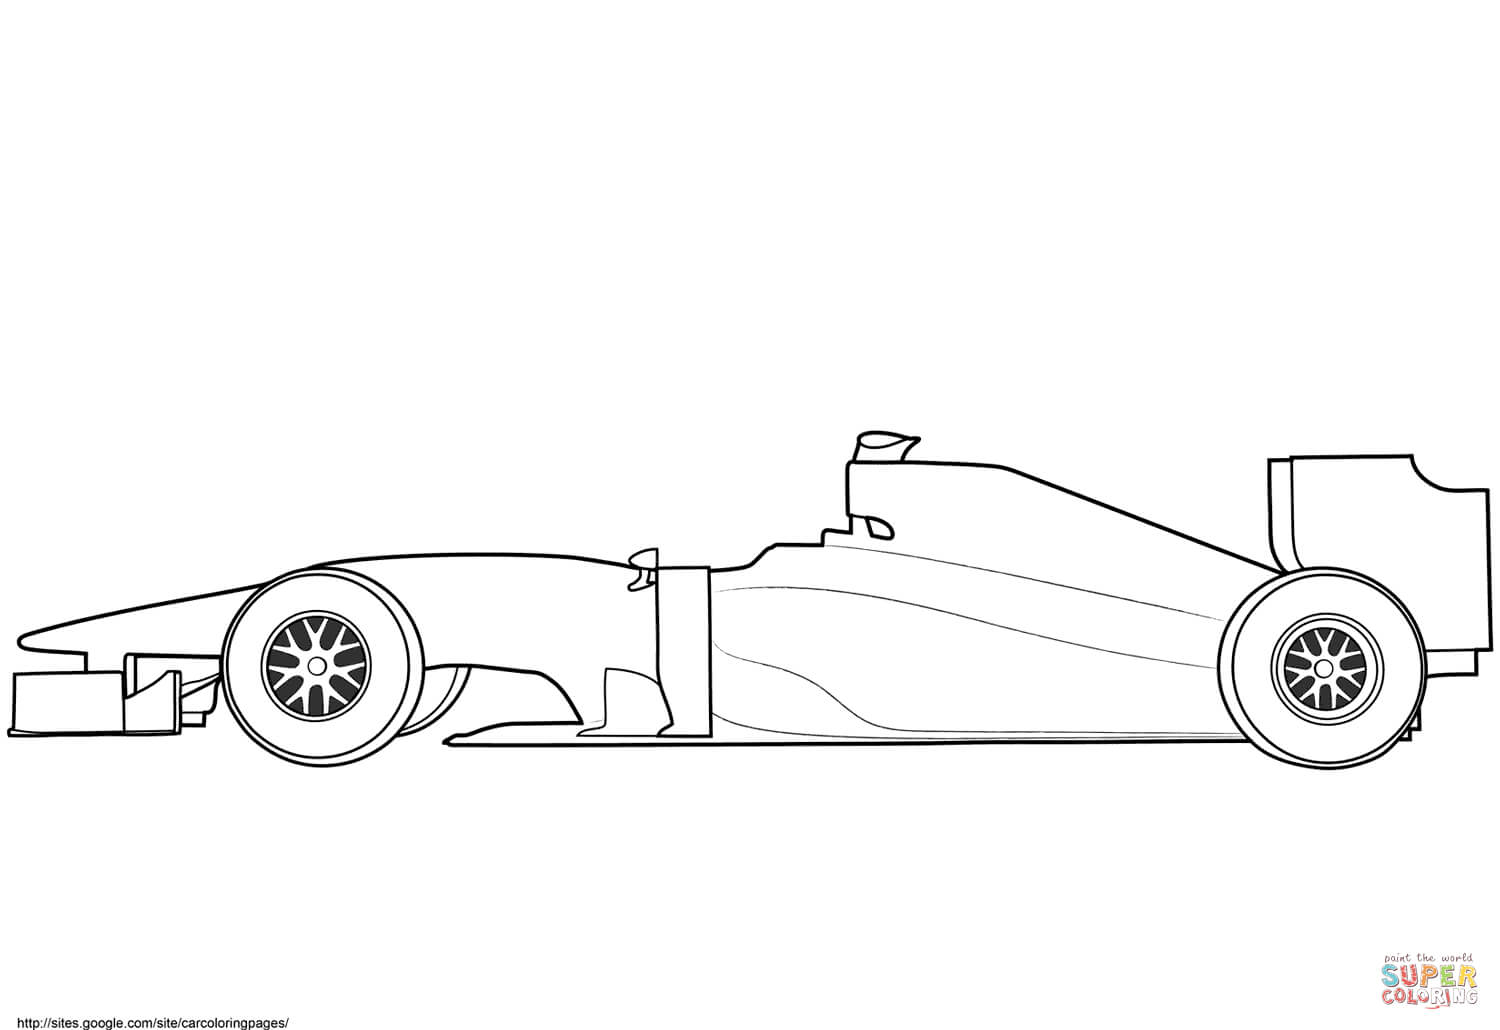 Blank Formula 1 Race Car Coloring Page | Free Printable Intended For Blank Race Car Templates